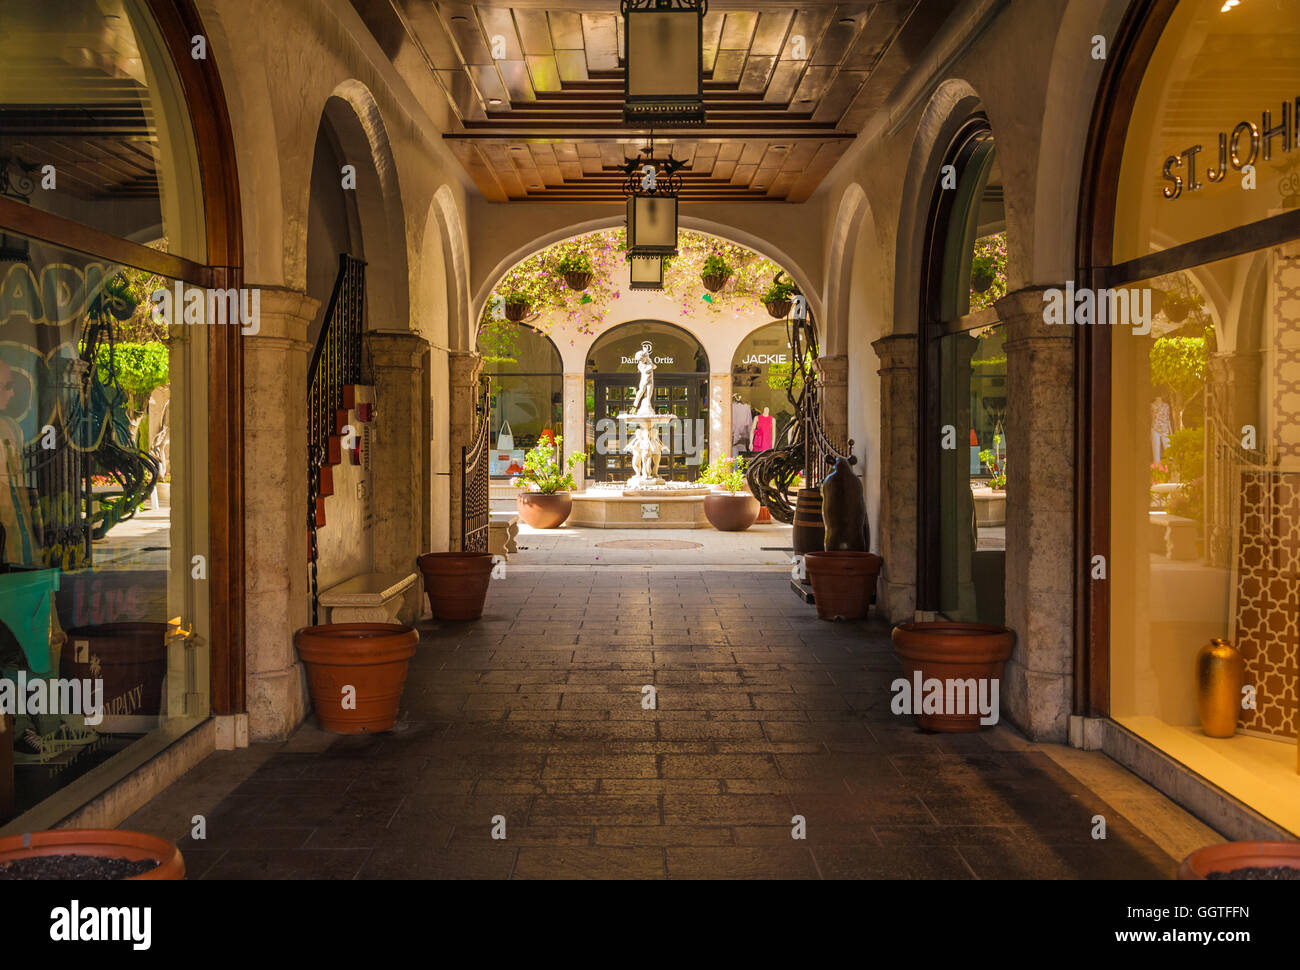 Via Amore on world-famous Worth Avenue in Palm Beach, Florida, USA. - Stock Image